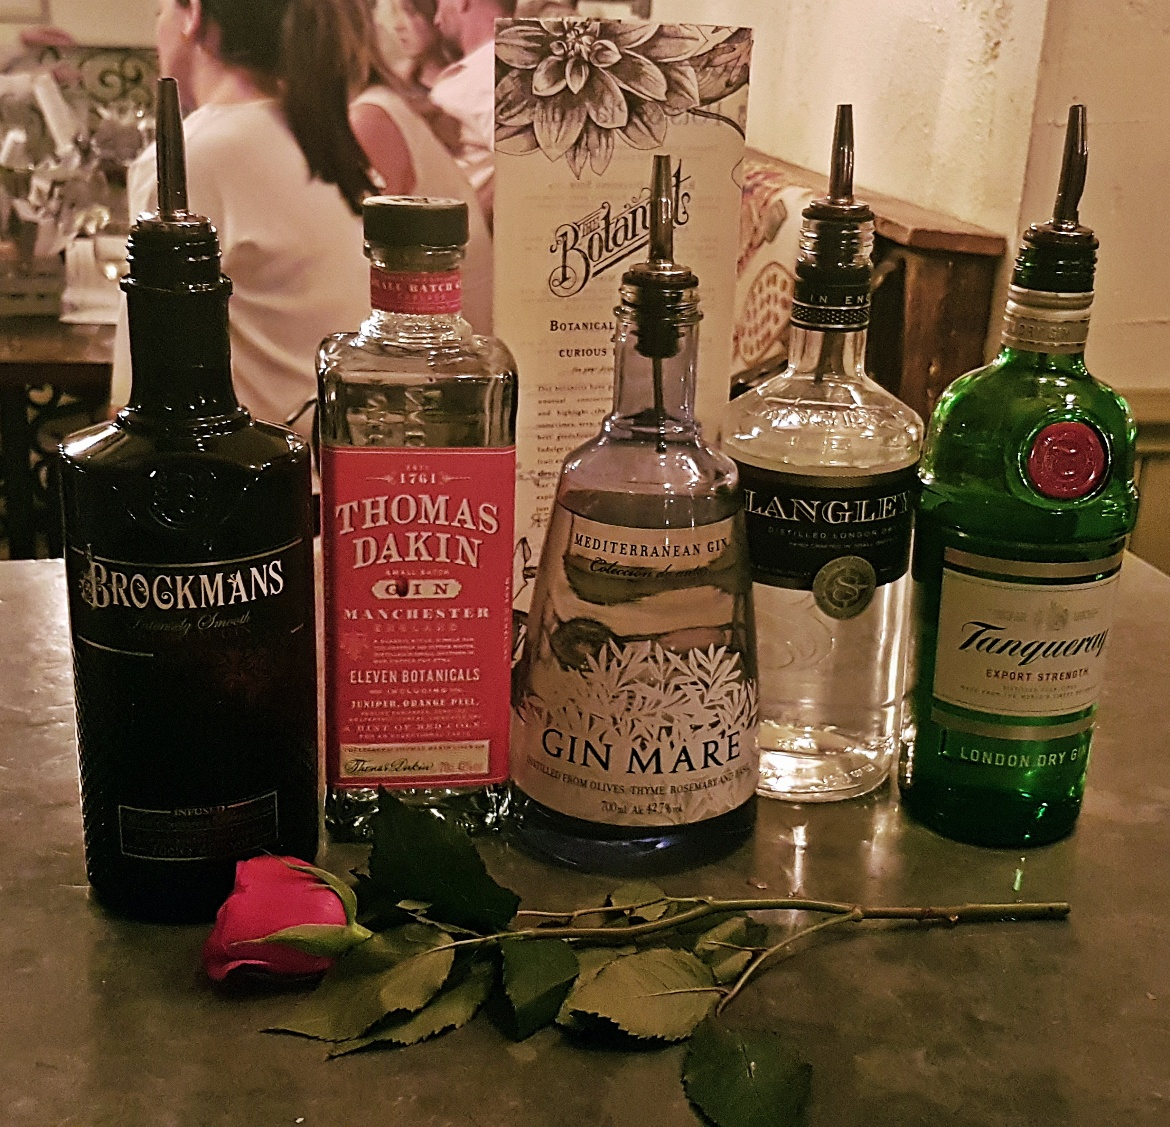 The five gins we tried - Gin Masterclass at the Botanist Leeds, review by BeckyBecky Blogs